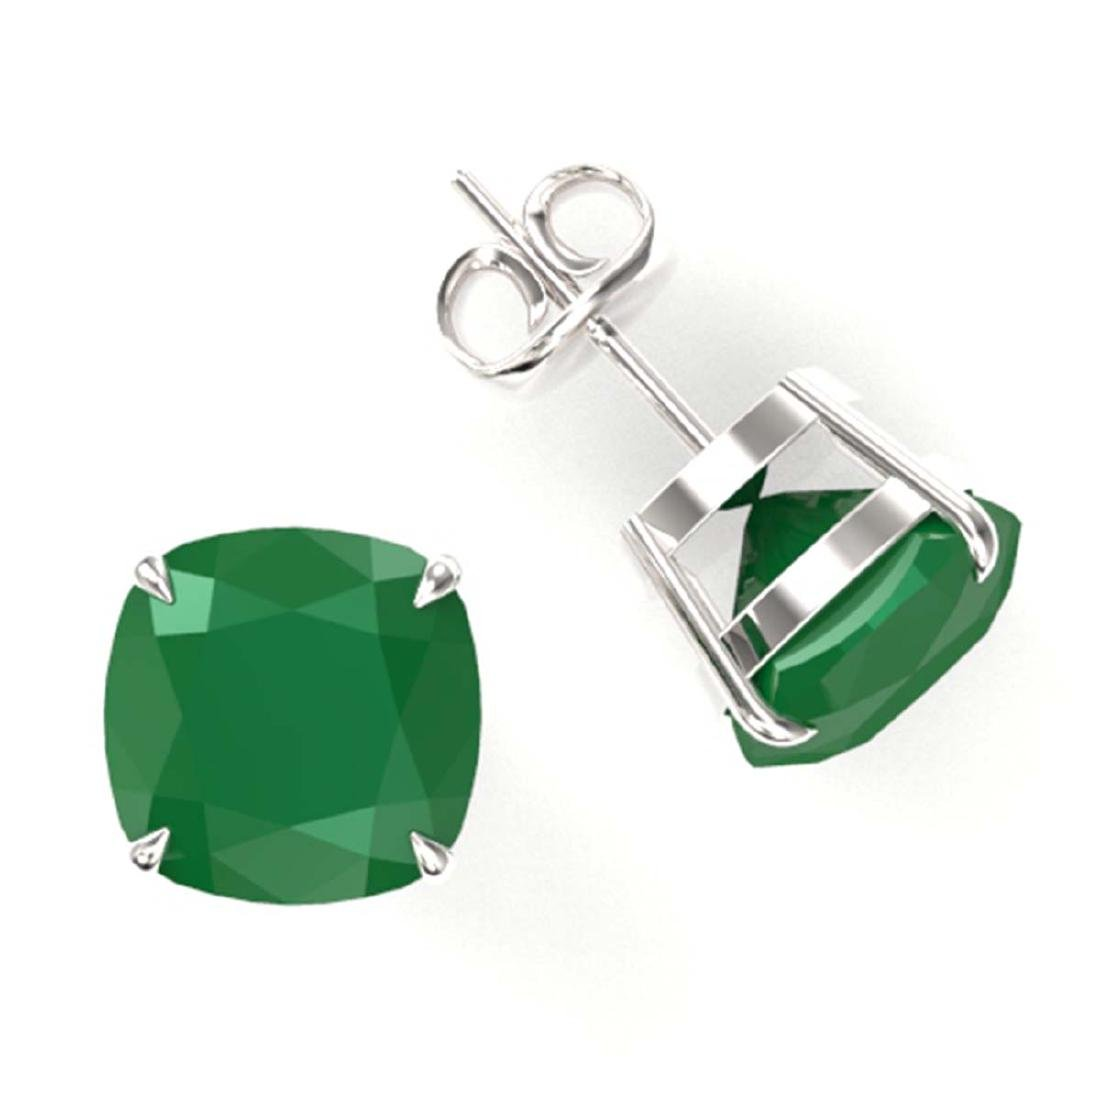 12 CTW Cushion Cut Emerald Solitaire Stud Earrings 18K - 2